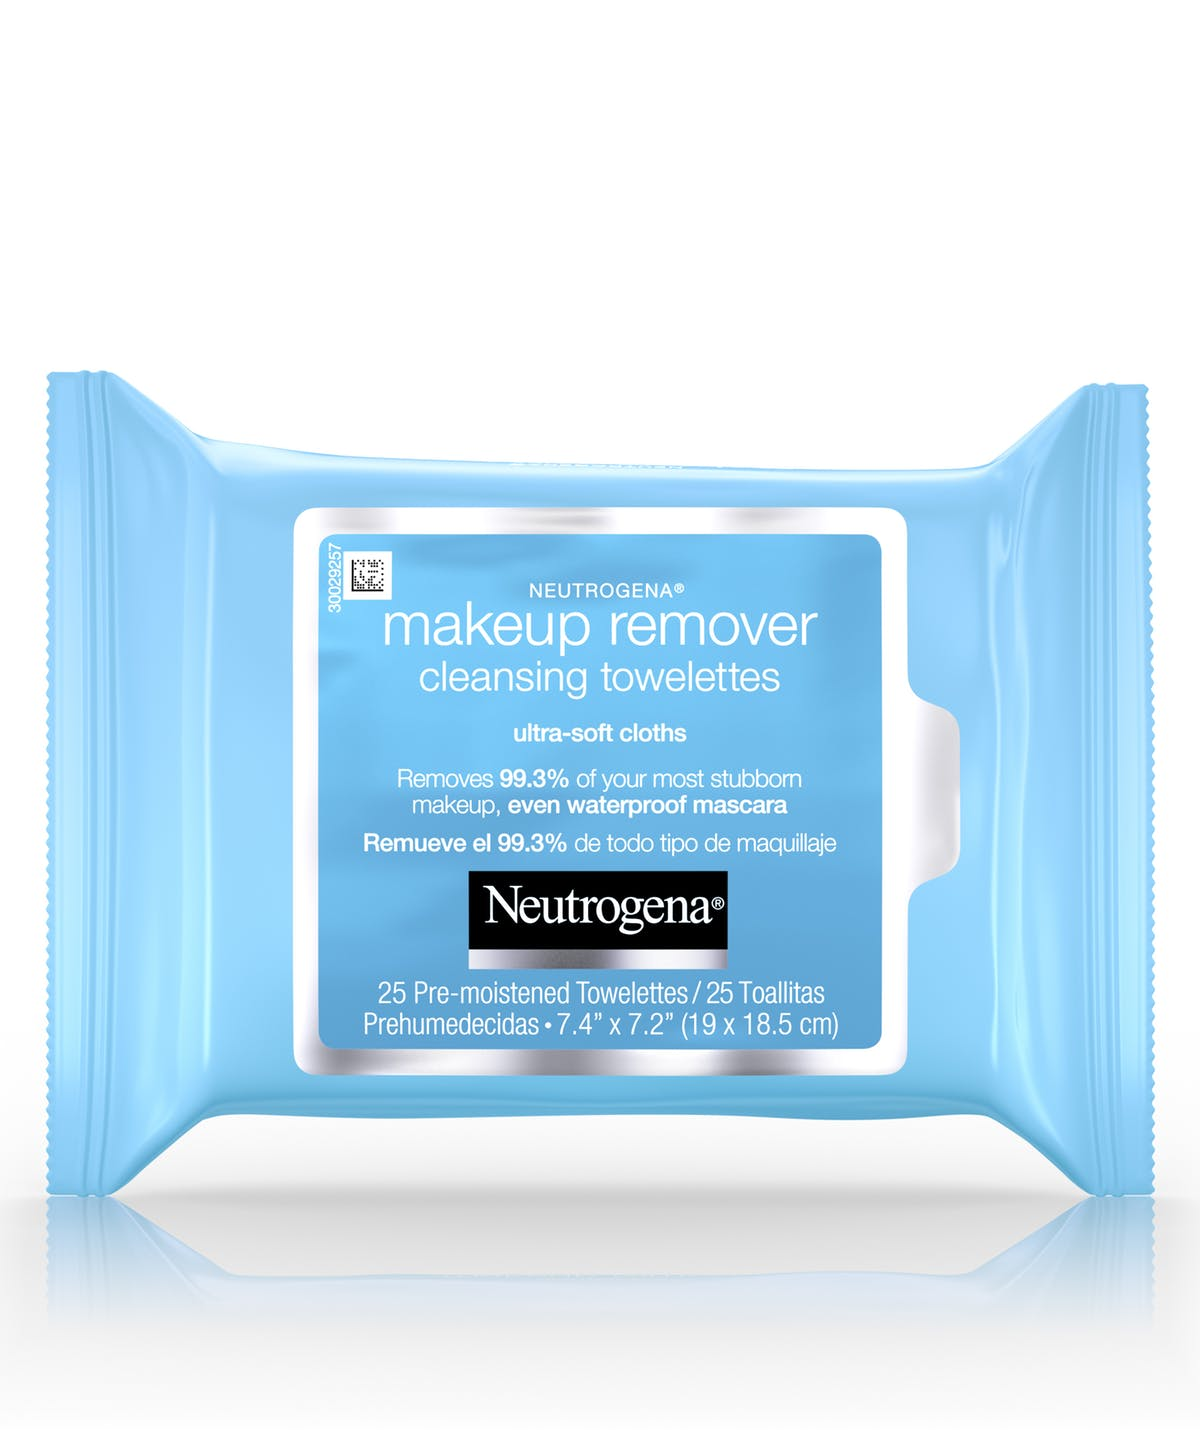 Makeup Remover Facial Cleansing Towelettes Neutrogena